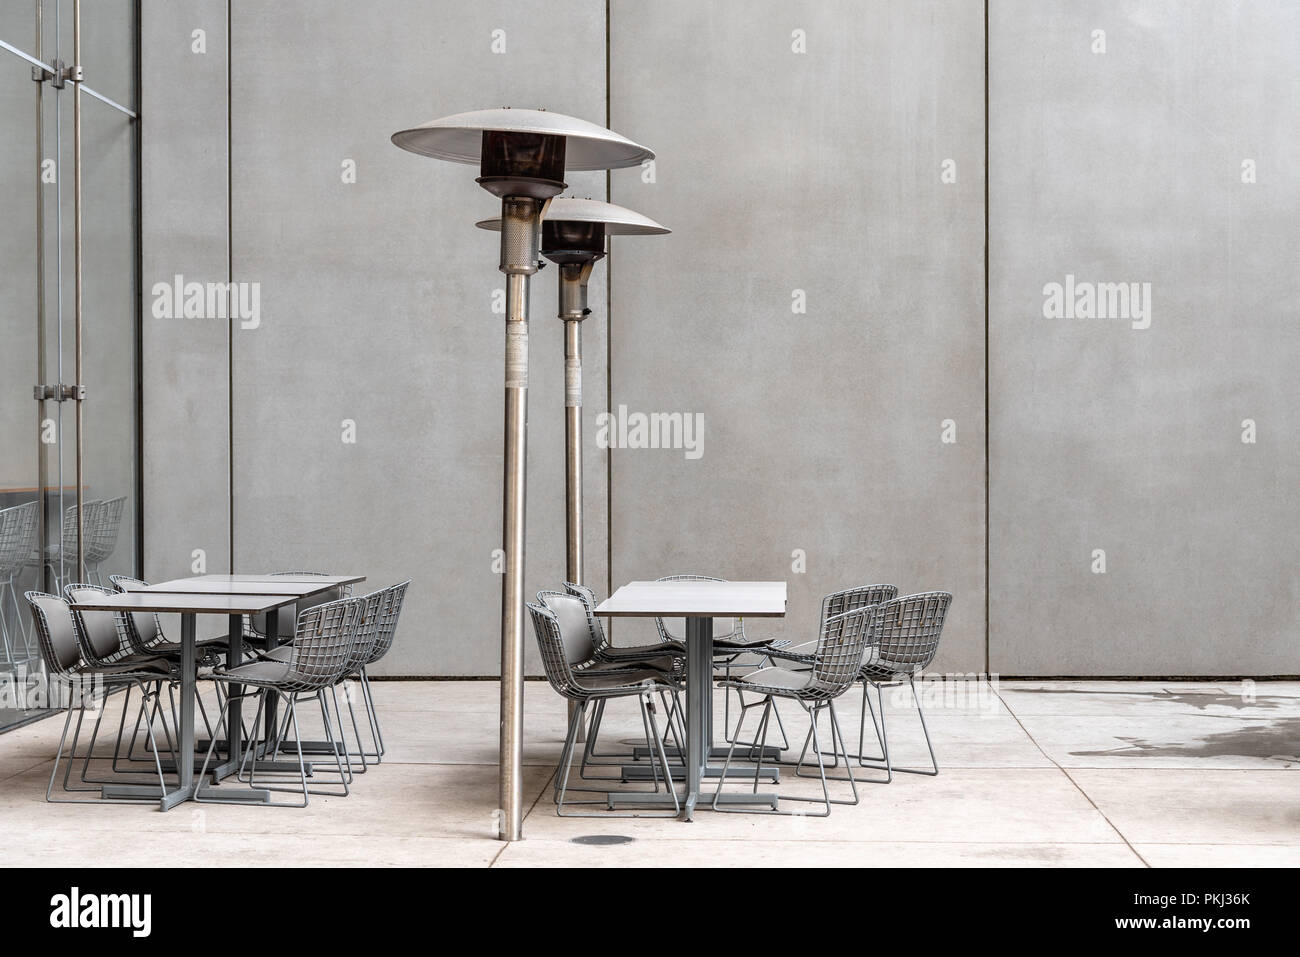 Modern restaurant terrace with tables, chairs and heaters against concrete wall with space for copy with no people. New York City, USA - Stock Image